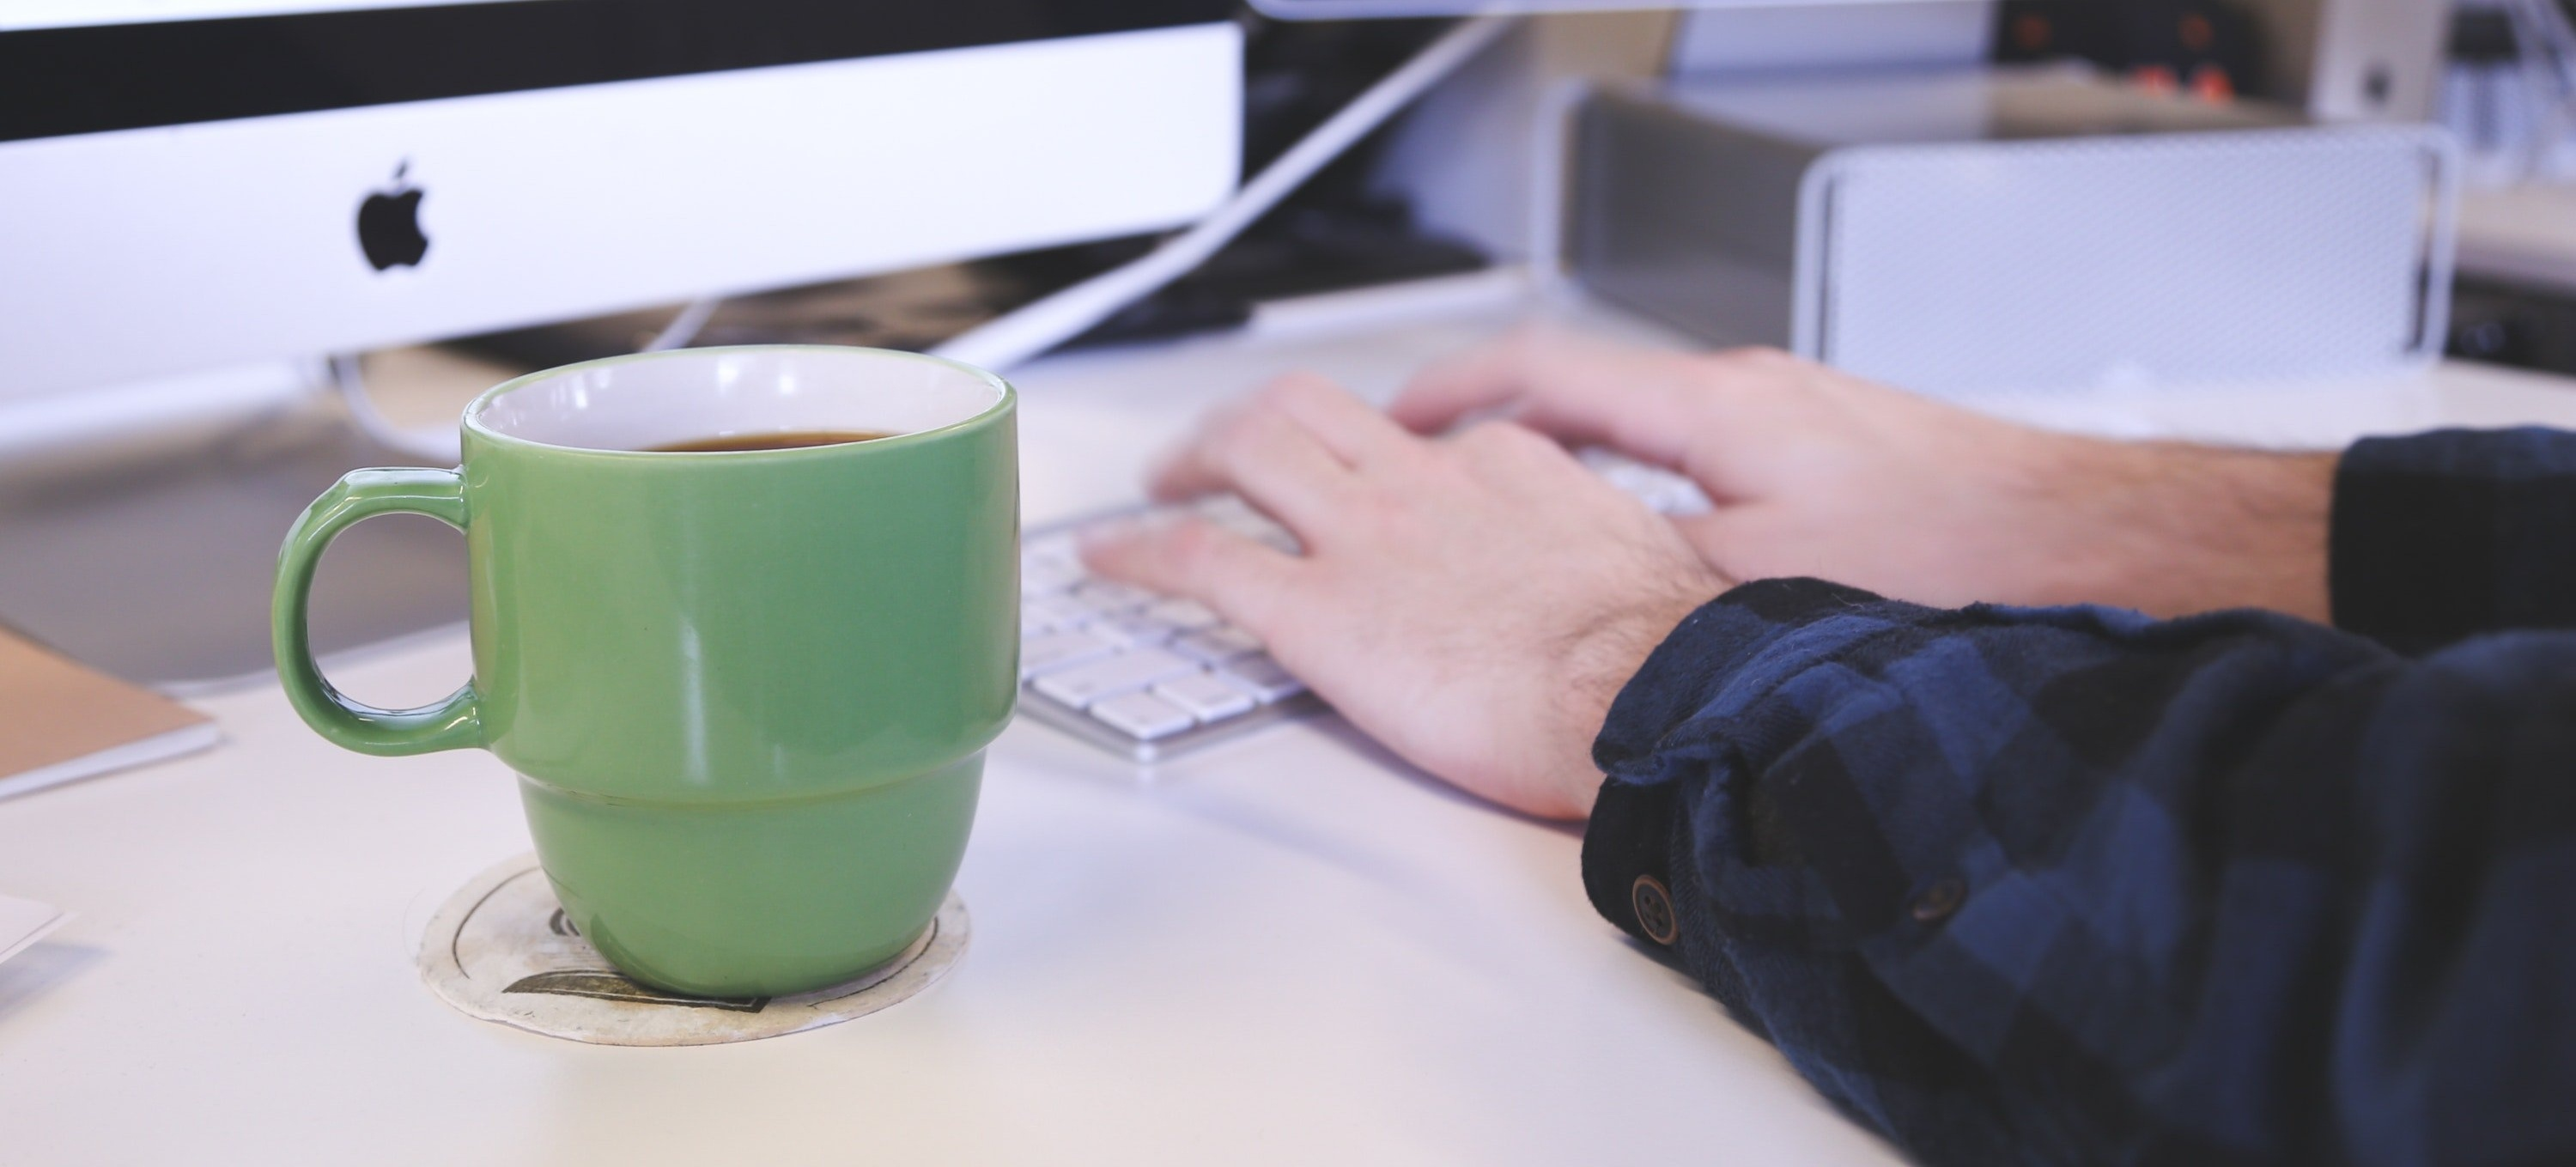 person-typing-on-keyboard-with-green-coffee-mug-293977-edited